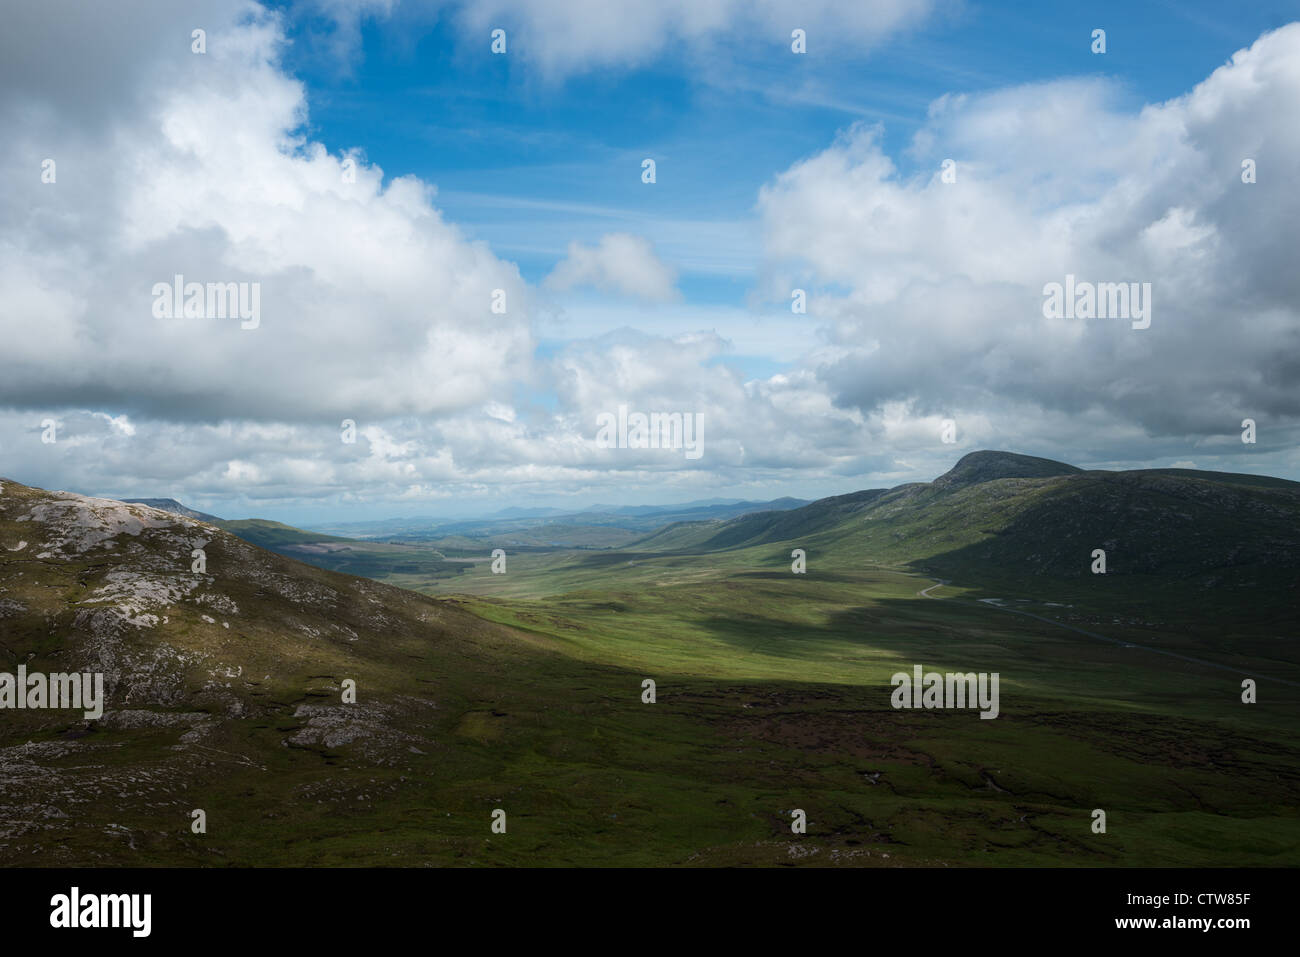 View from Mount Errigal of the range of Derryveagh Mountains in Glenveagh national park, Donegal, Ireland. - Stock Image